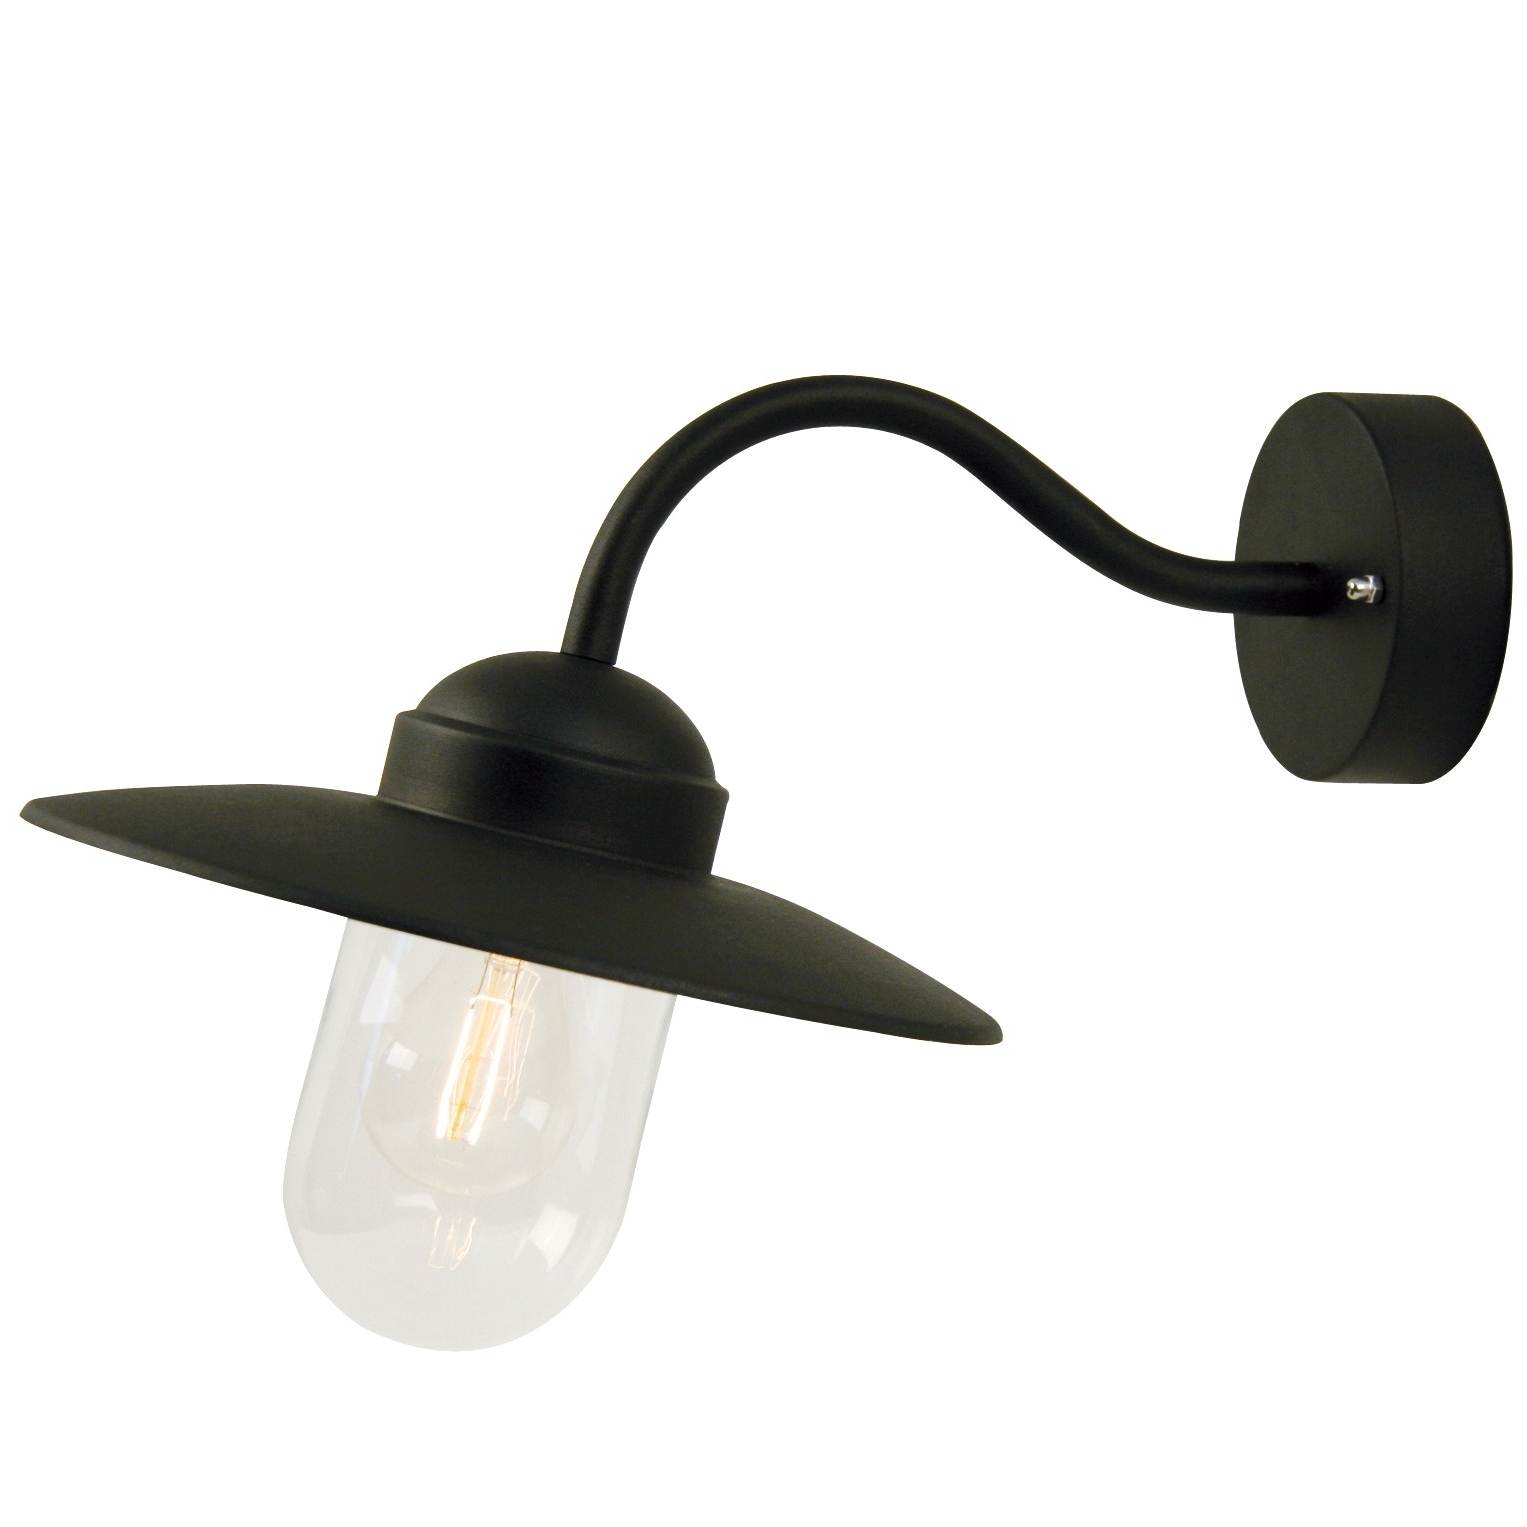 Madlonsbigbear Regarding Trendy Outdoor Wall Lights At John Lewis (View 13 of 20)